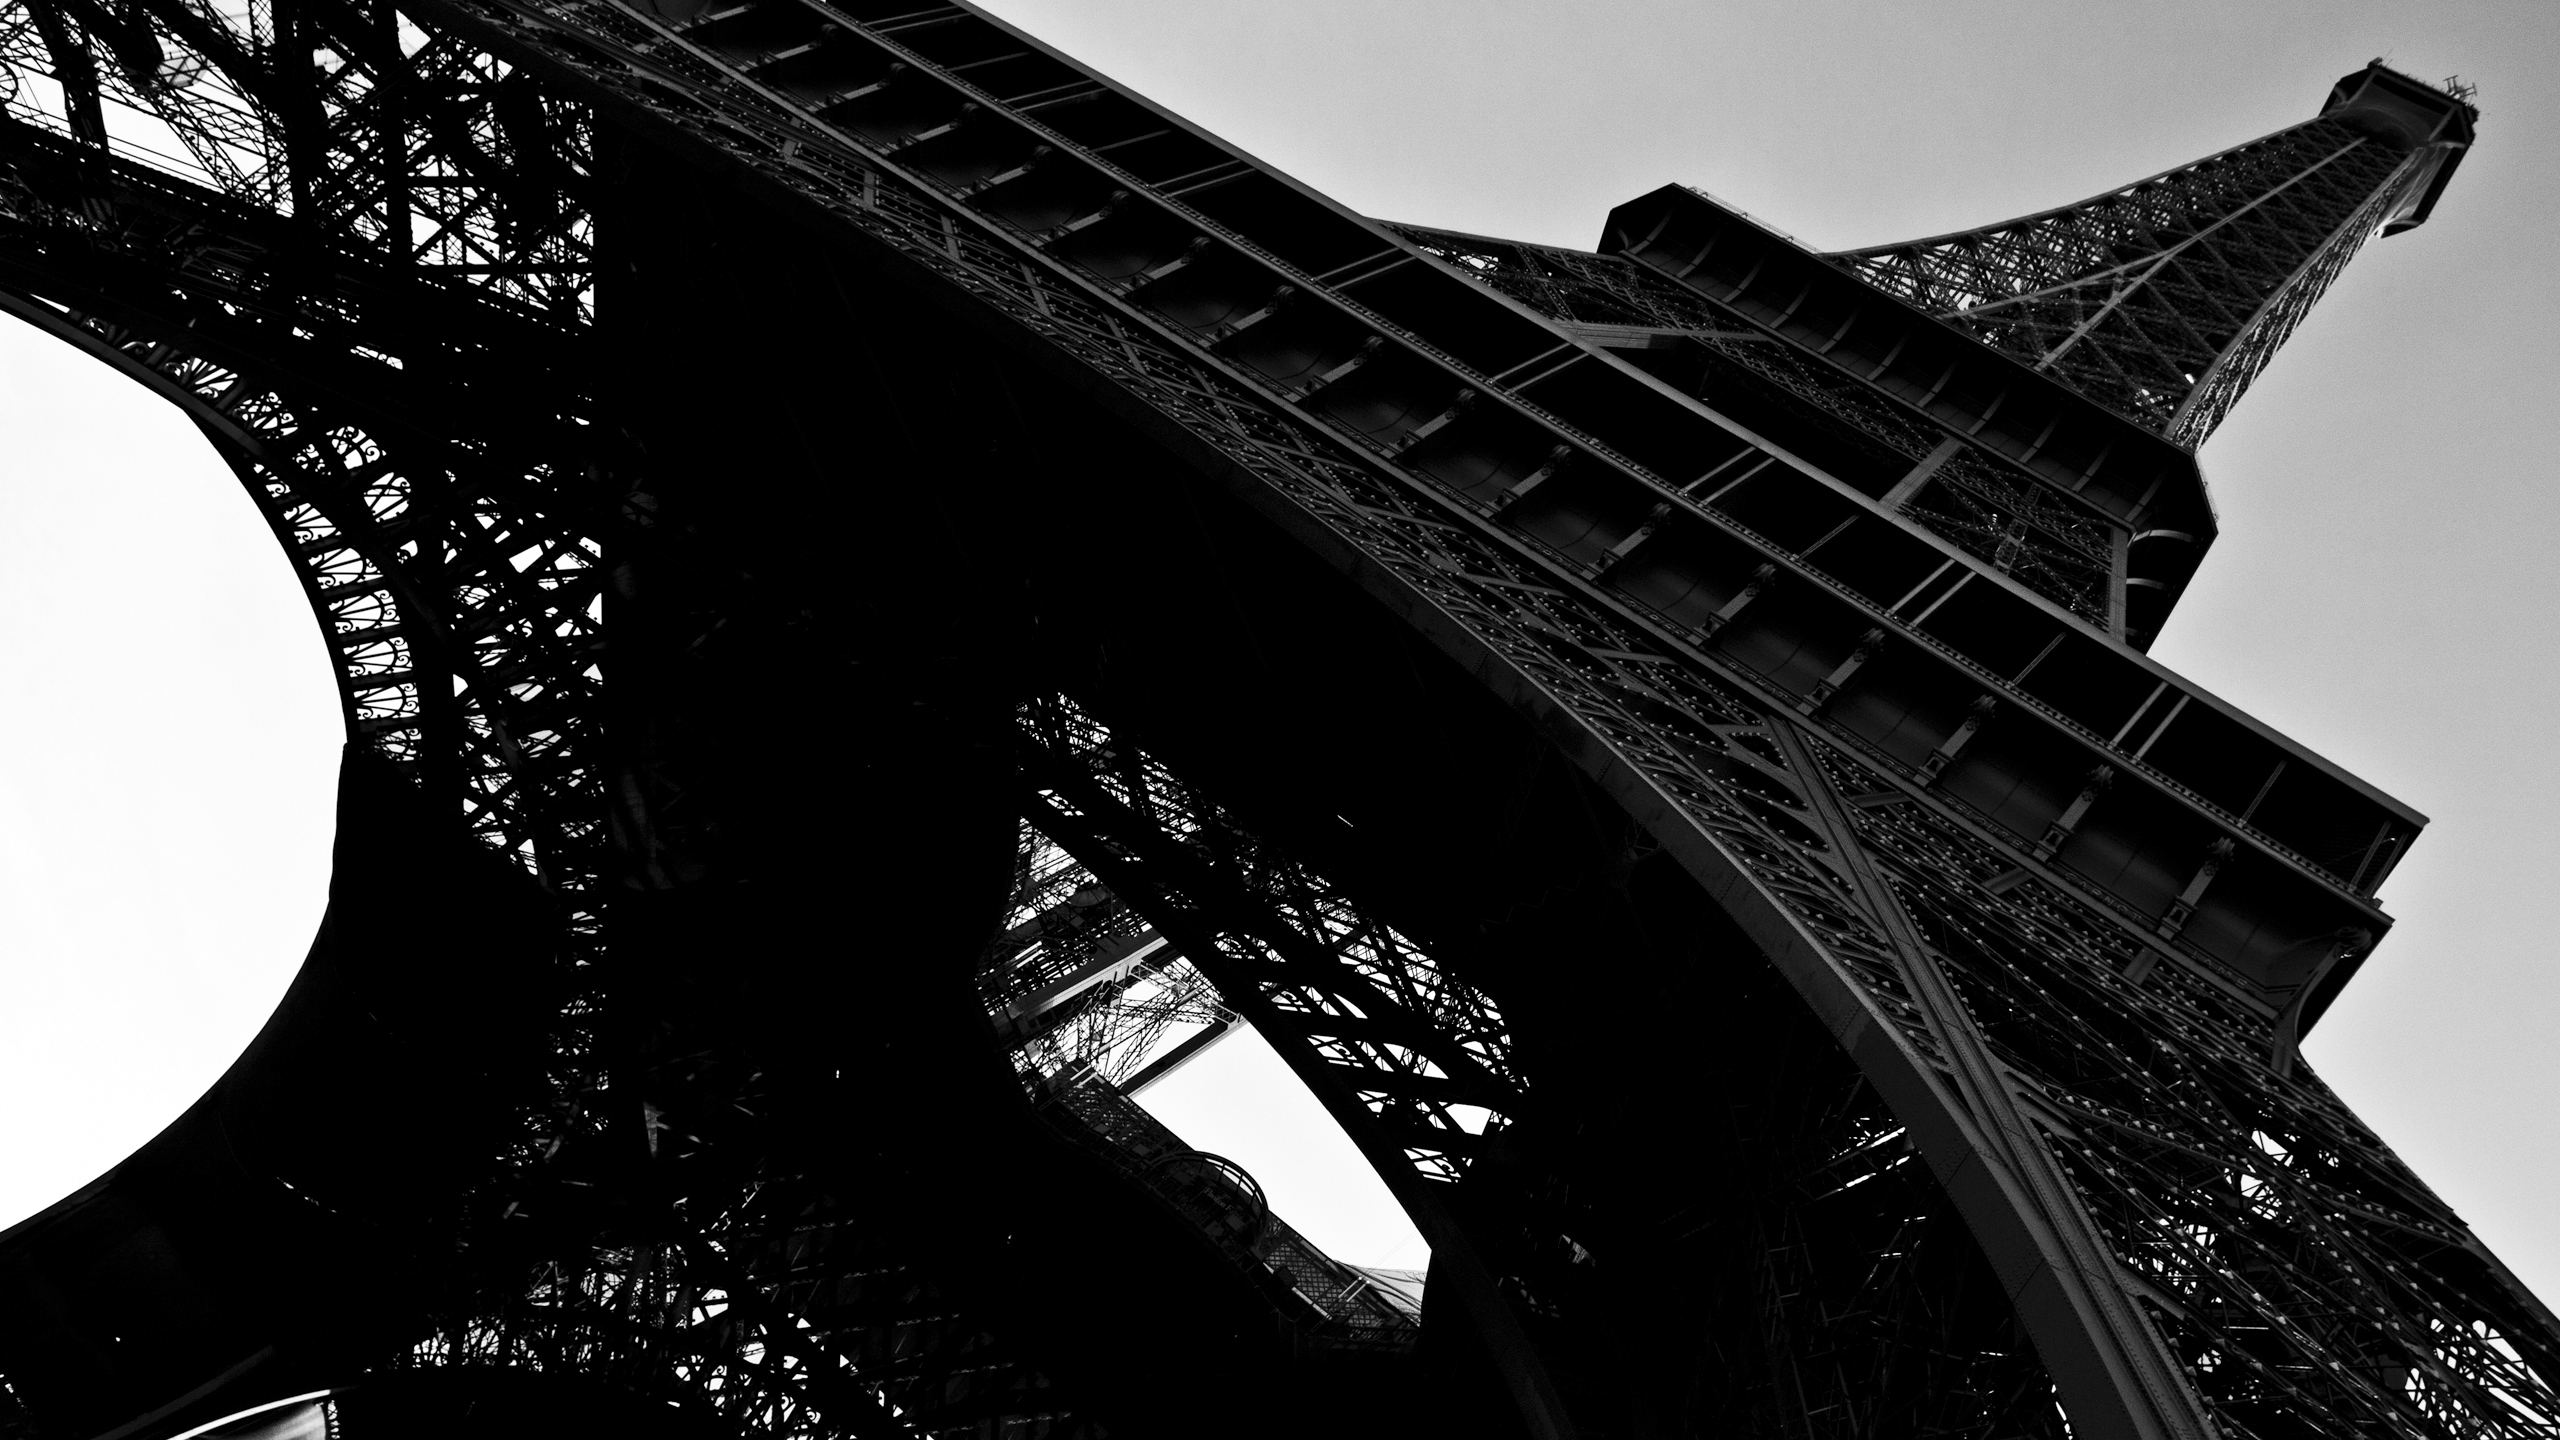 _Eiffel_tower_close-up__black-and-white_photo_058397_